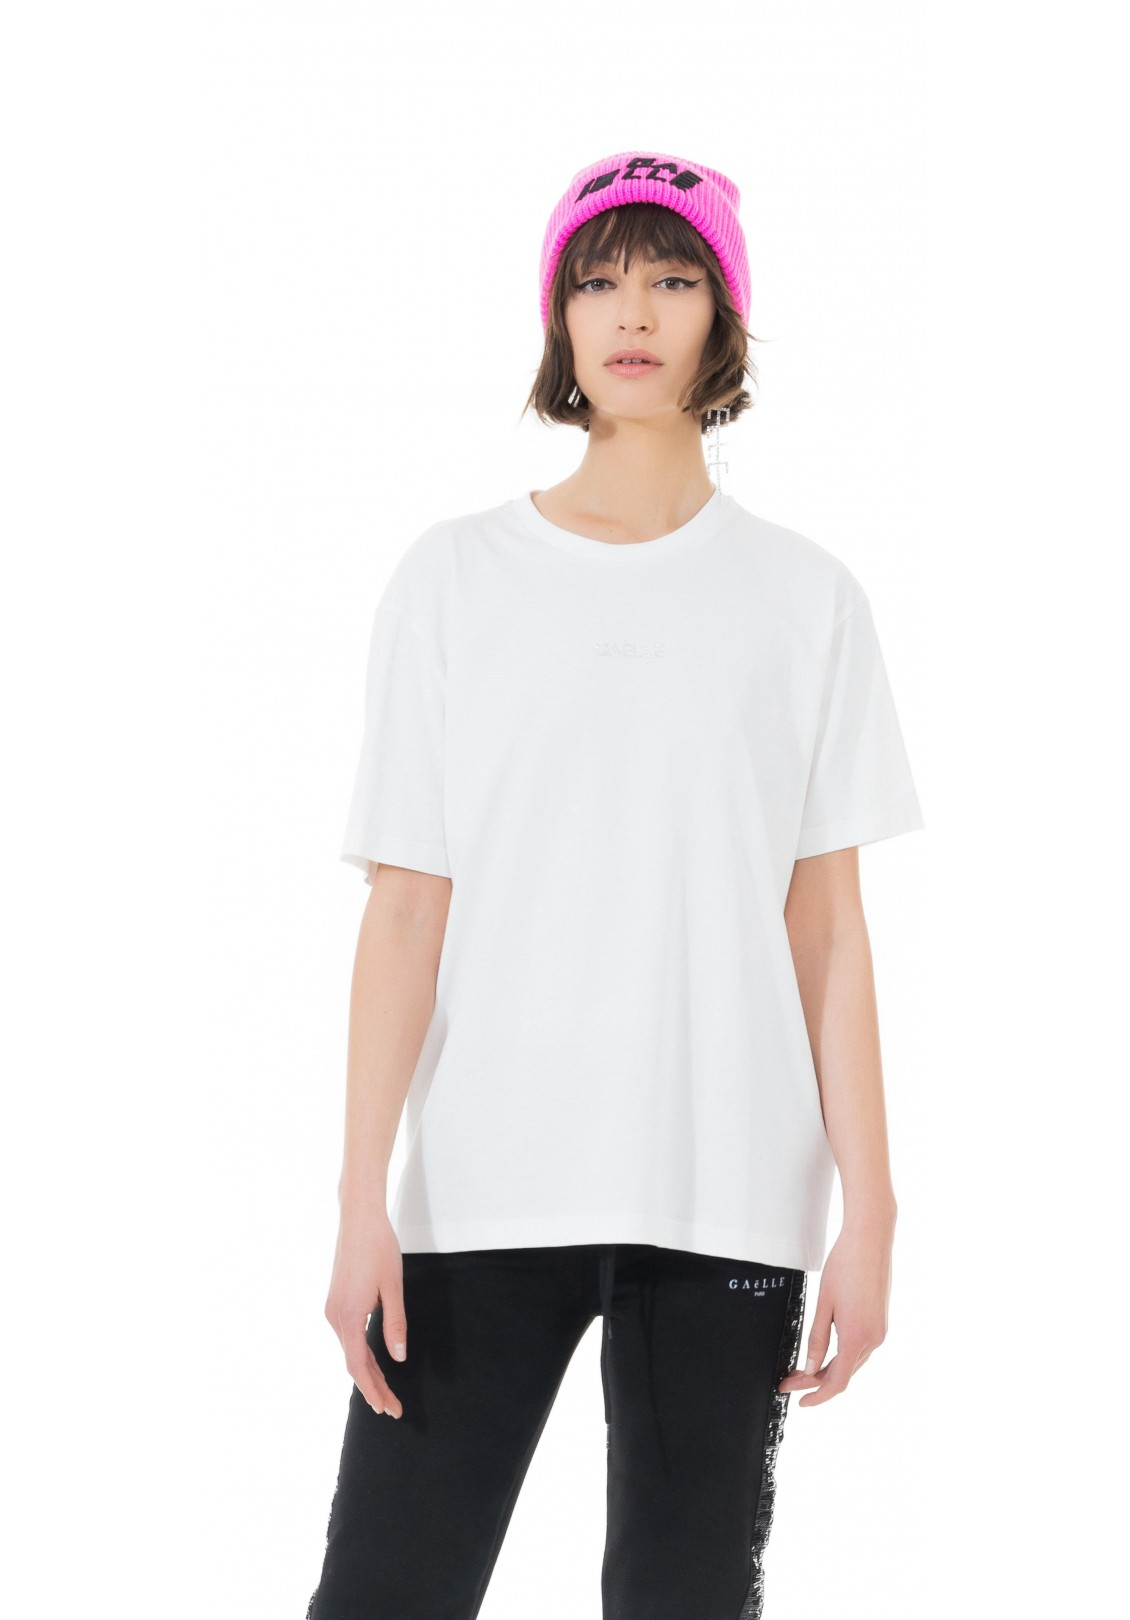 T-SHIRT - GBD4720 - GAELLE PARIS